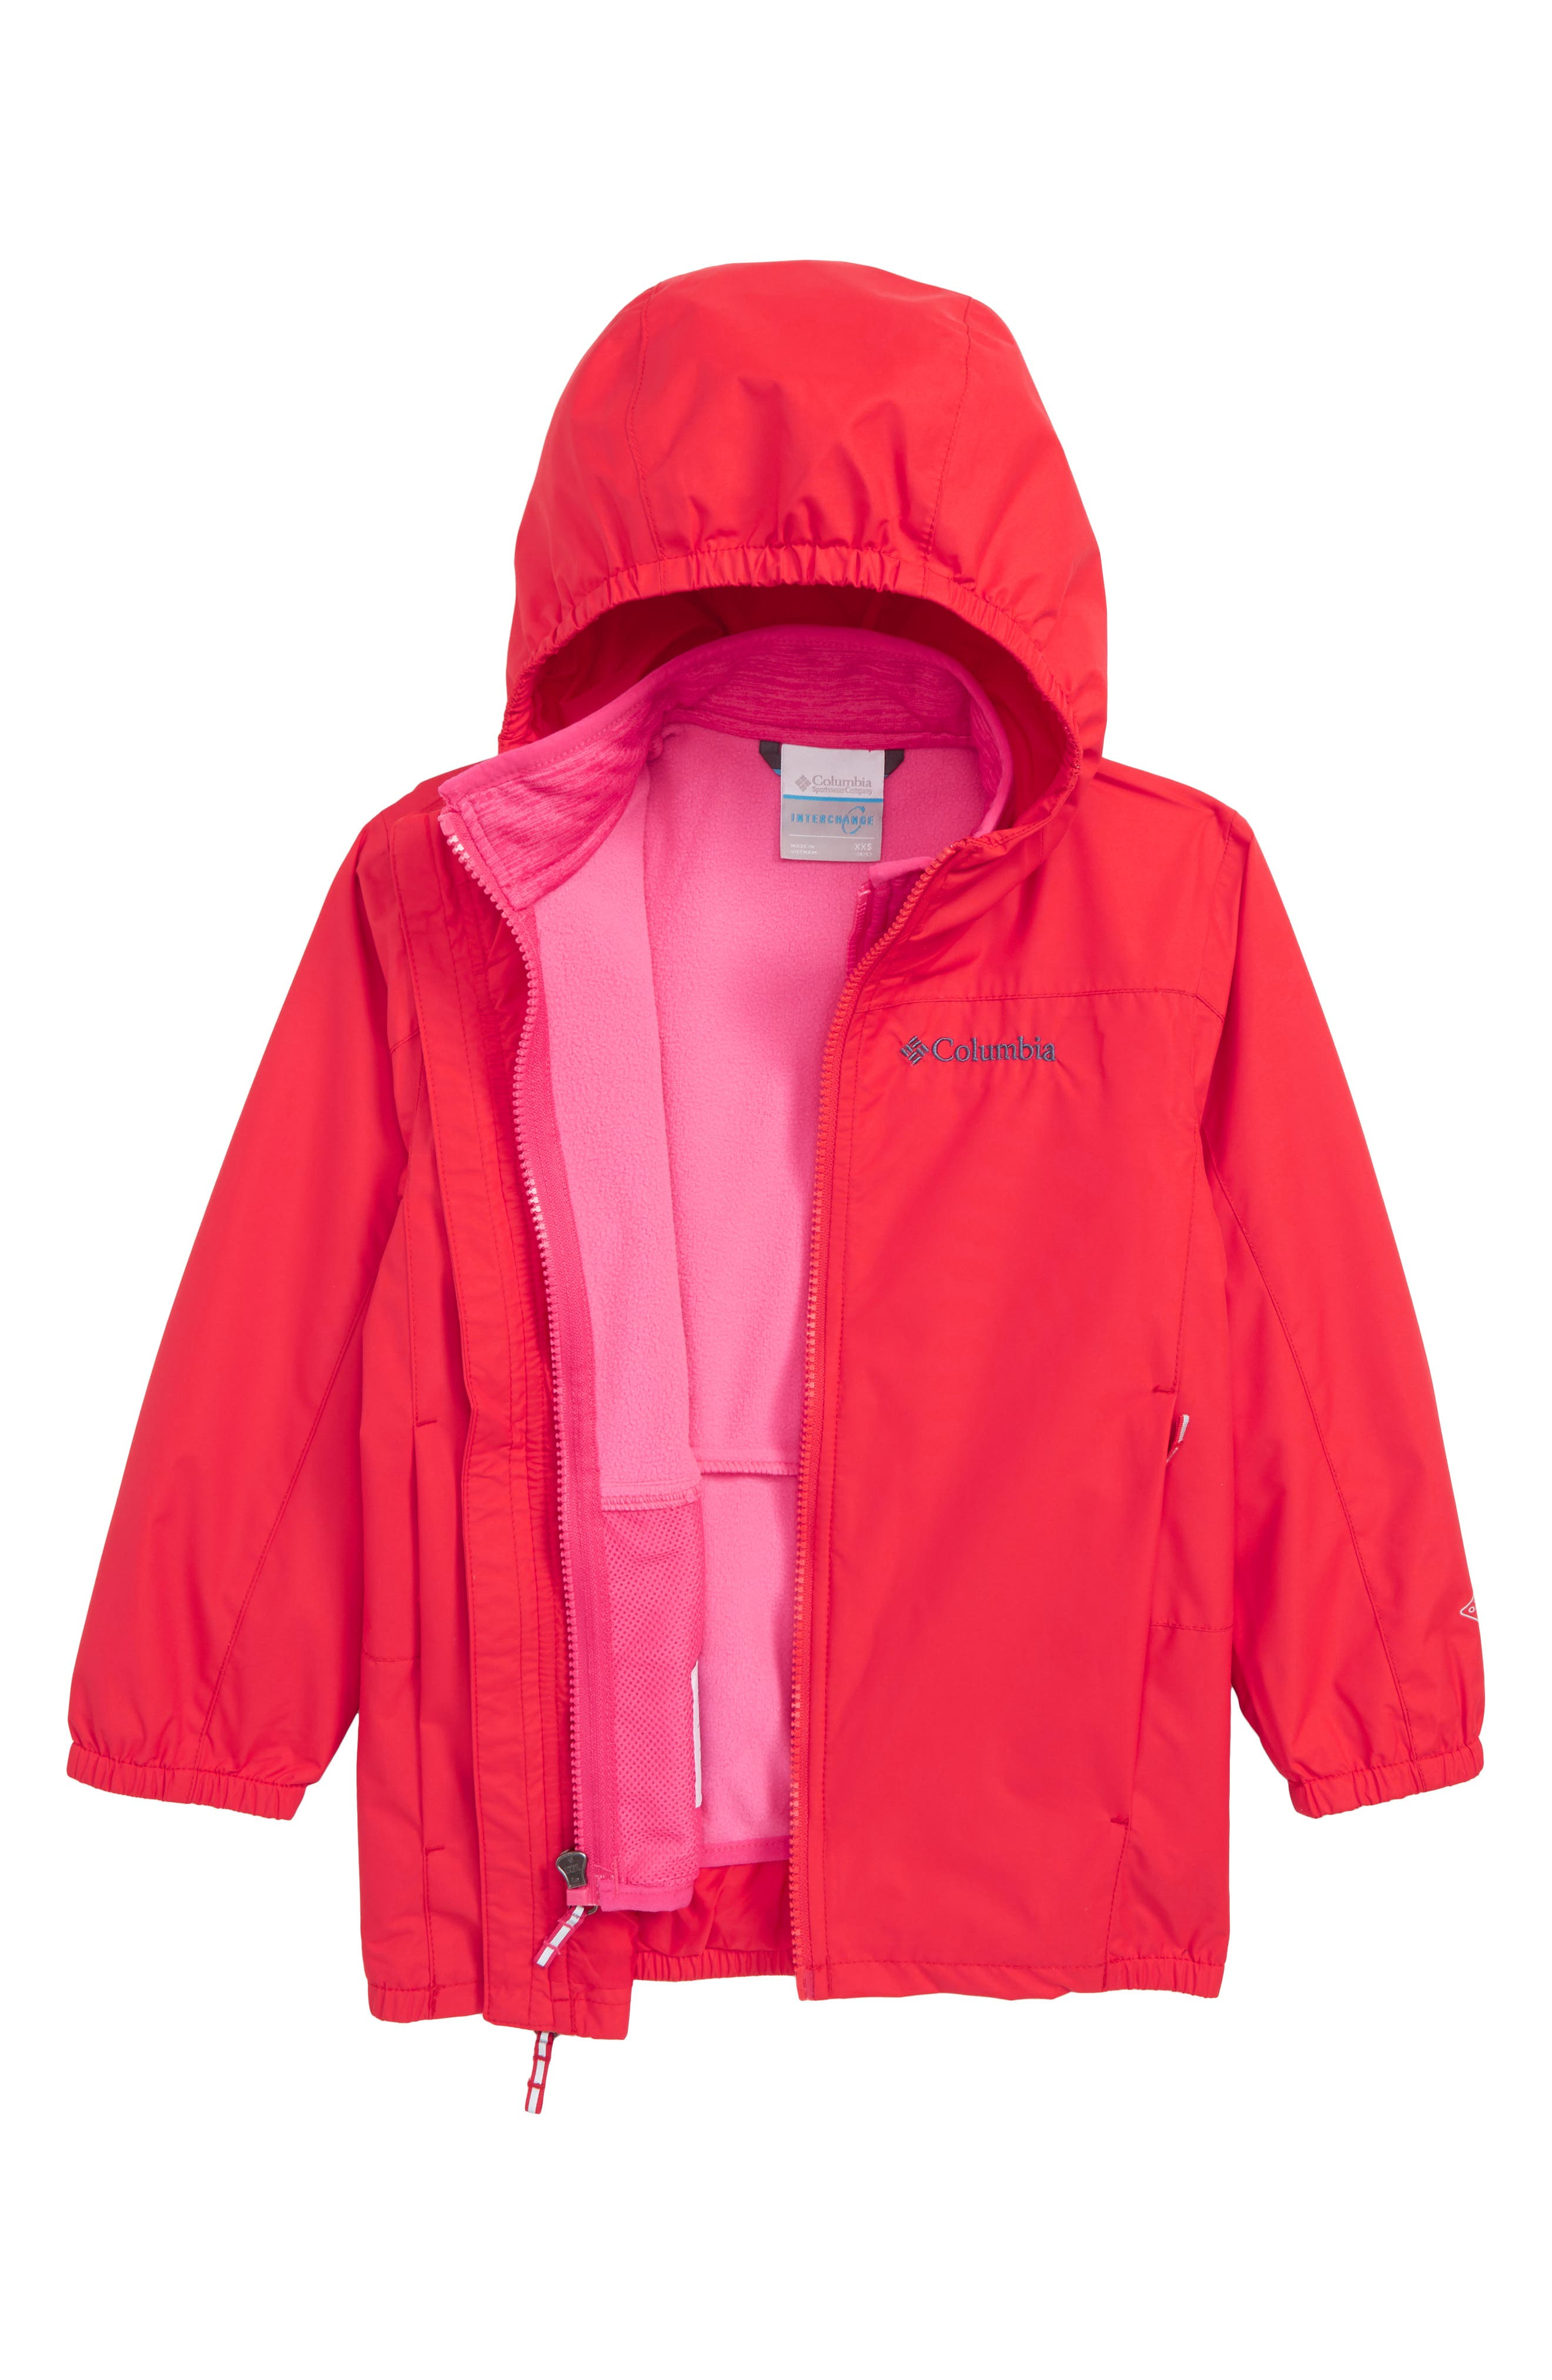 COLUMBIA Explore S'more Omni-Tech<sup>™</sup> Waterproof 3-in-1 Jacket, Main, color, 696